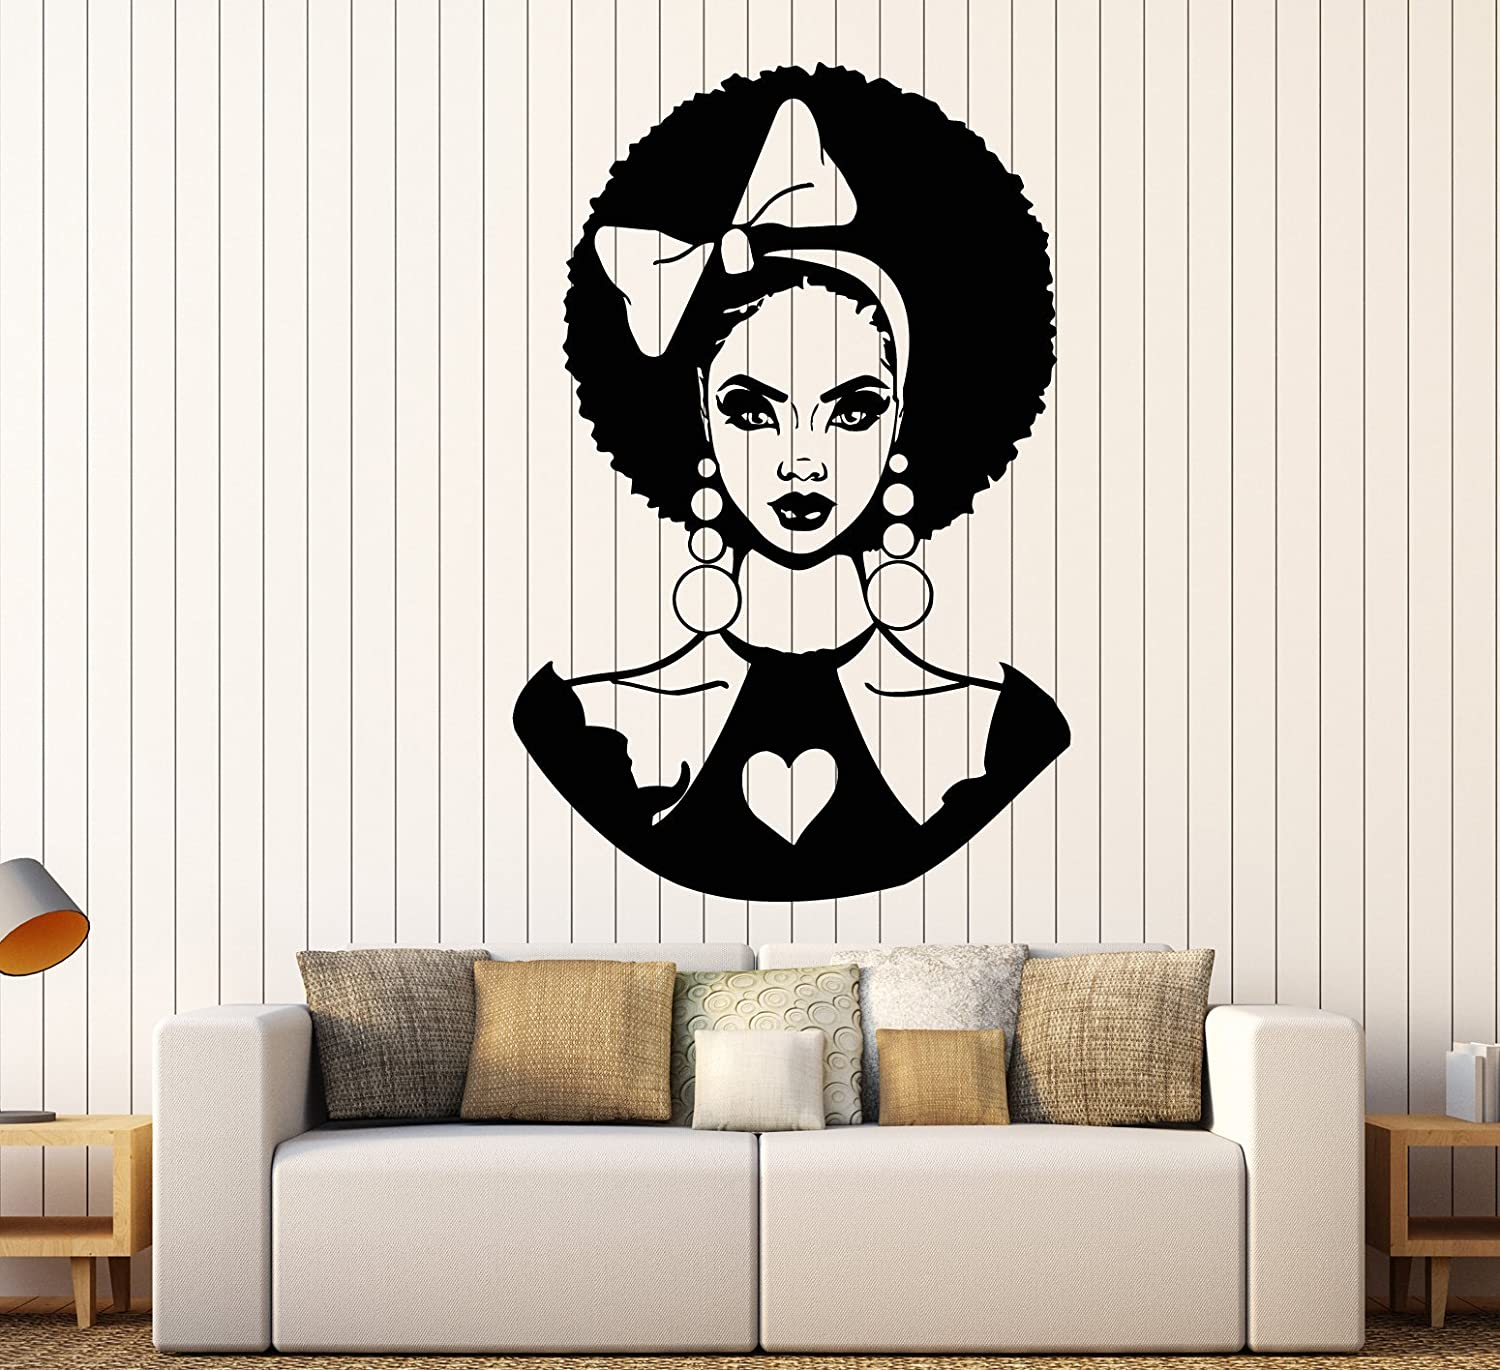 Vinyl Wall Decal African San New Shipping Free Shipping Jose Mall Woman Stickers Hairstyle Bow Lady Black